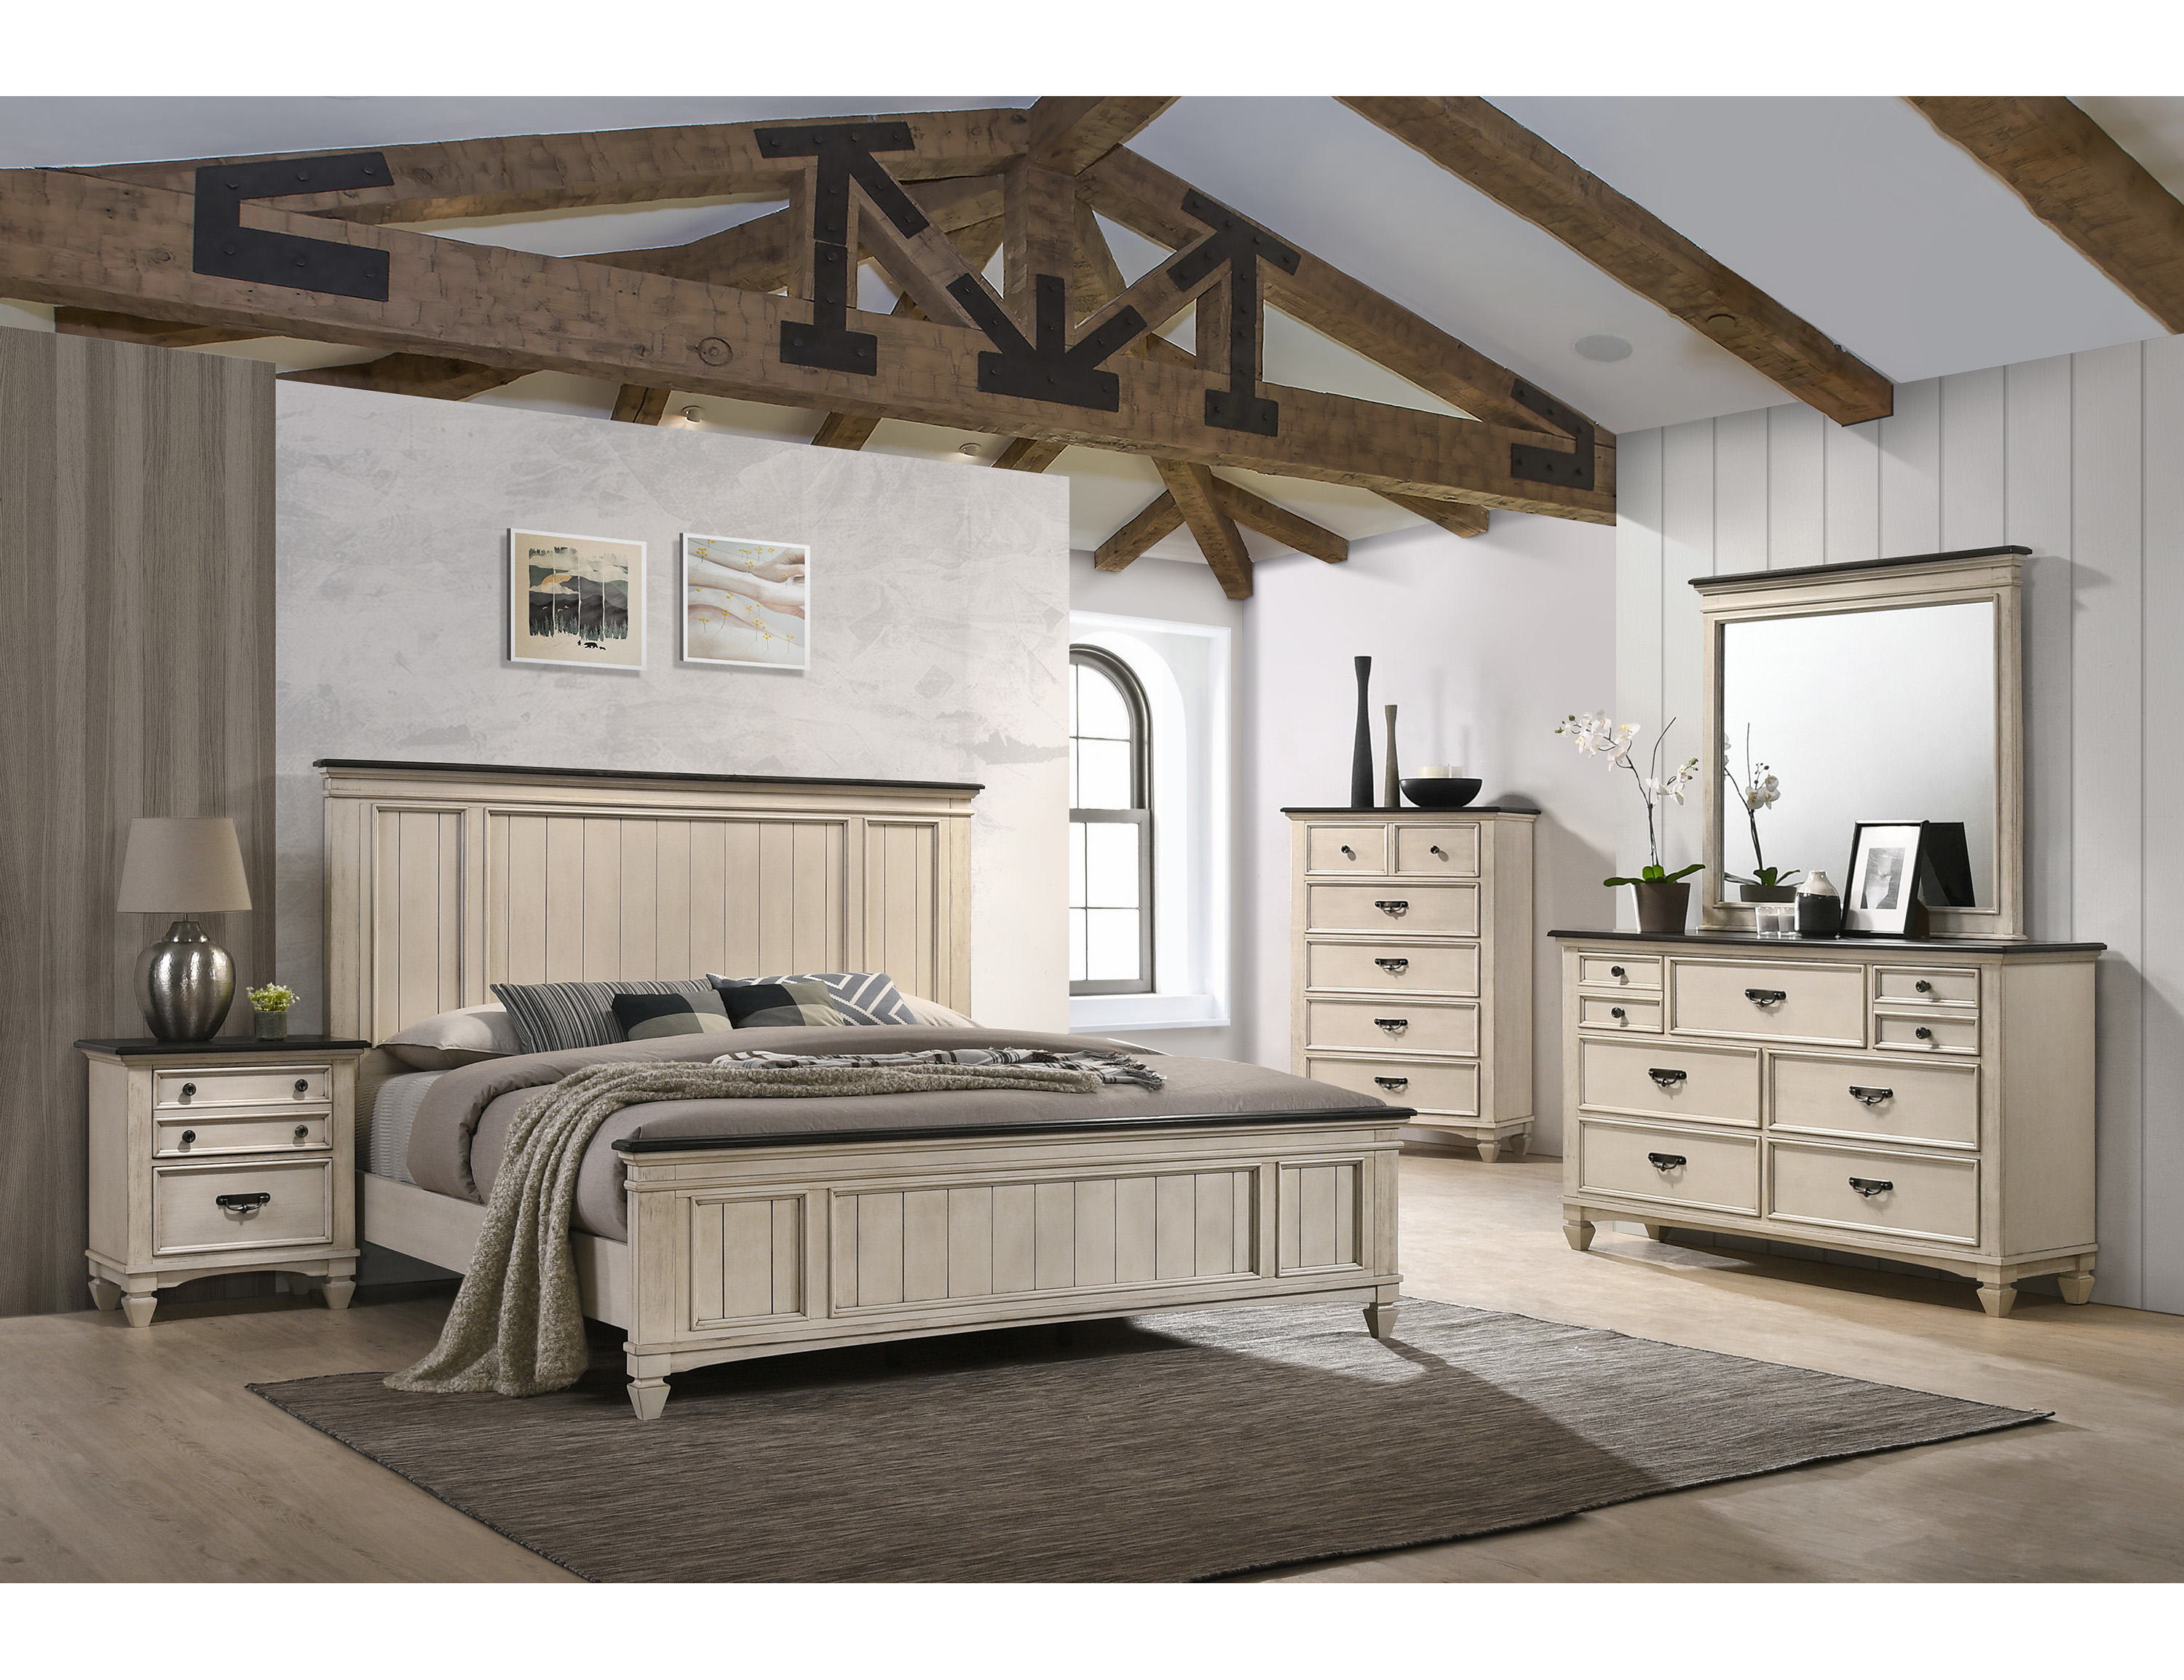 23510 – Bedroom Set – CMK-B9100